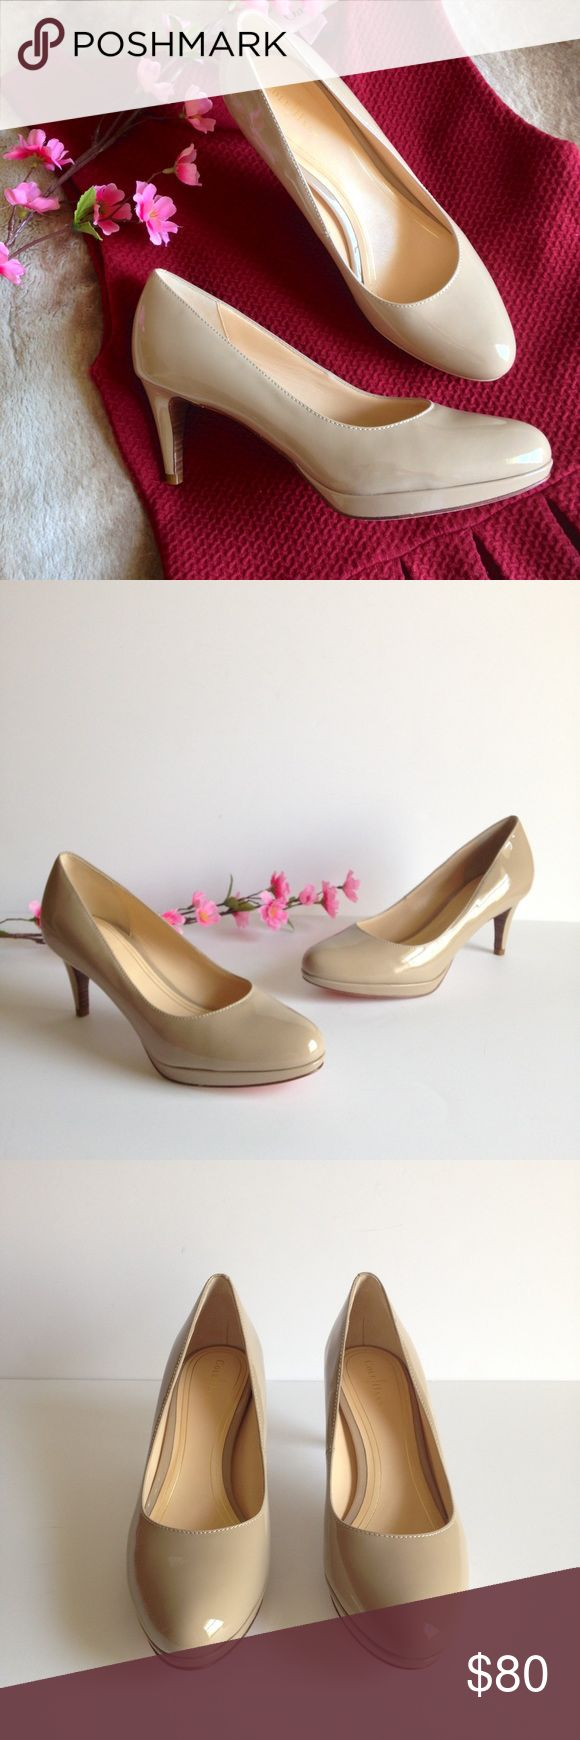 """NWOT Cole Haan Nude Patent Leather Pumps You can't go wrong with this classic nude patent leather pump by Cole Haan, features 3"""" heel and nike air technology for comfort all day long. Brand new without box/dust bags, this item was a store display and has markings on the soles as pictured! Size 9. I happily entertain reasonable offers  Cole Haan Shoes Heels"""